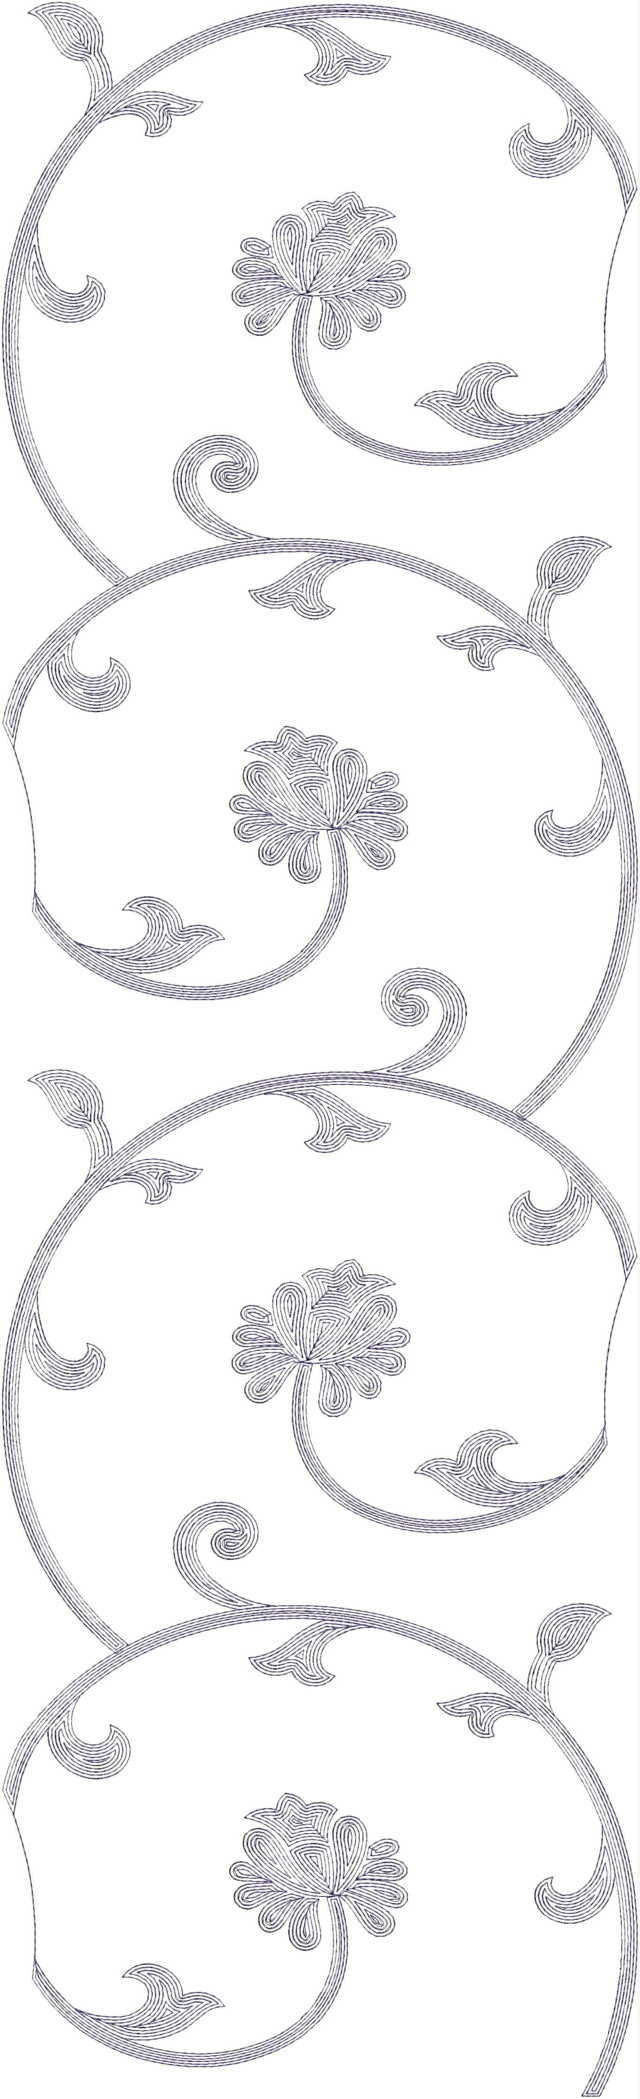 Low renj all garment Embroidery Design